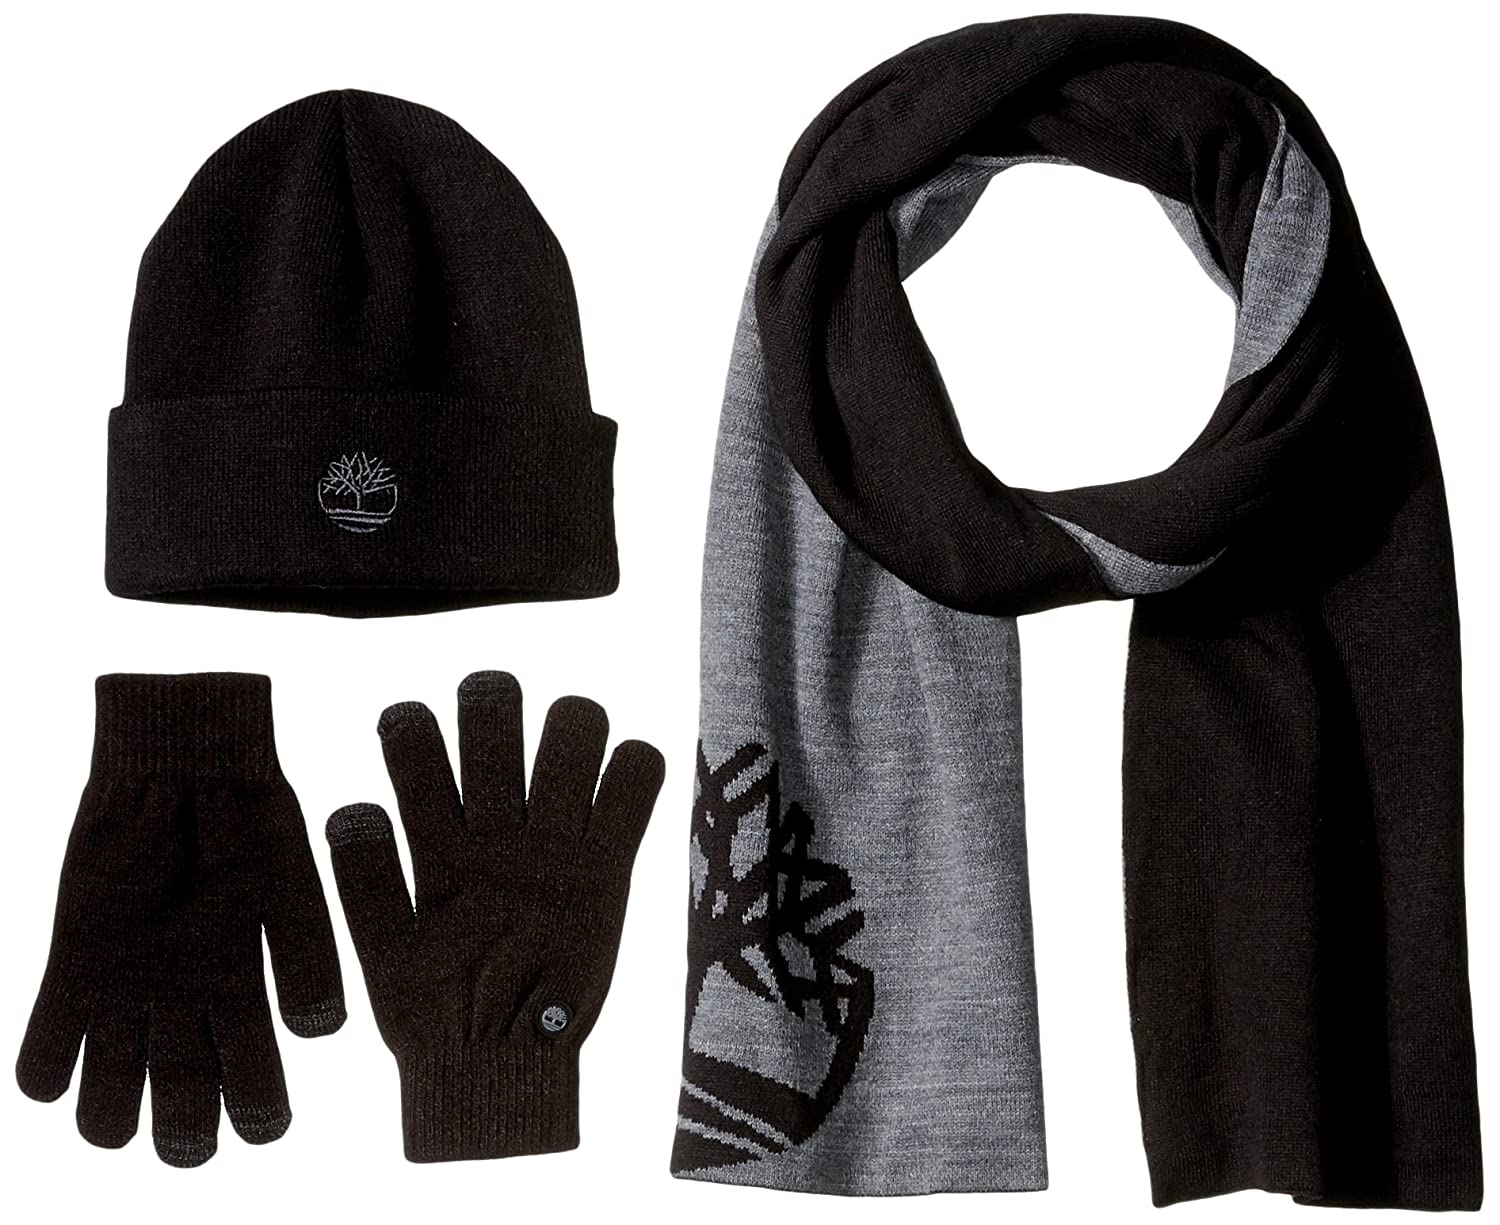 7385f4d49465a Timberland Men's Logo Scarf/Magic Glove with Embroidered TBL Tree  Logo/Watchcap, Black, One Size: Amazon.co.uk: Clothing